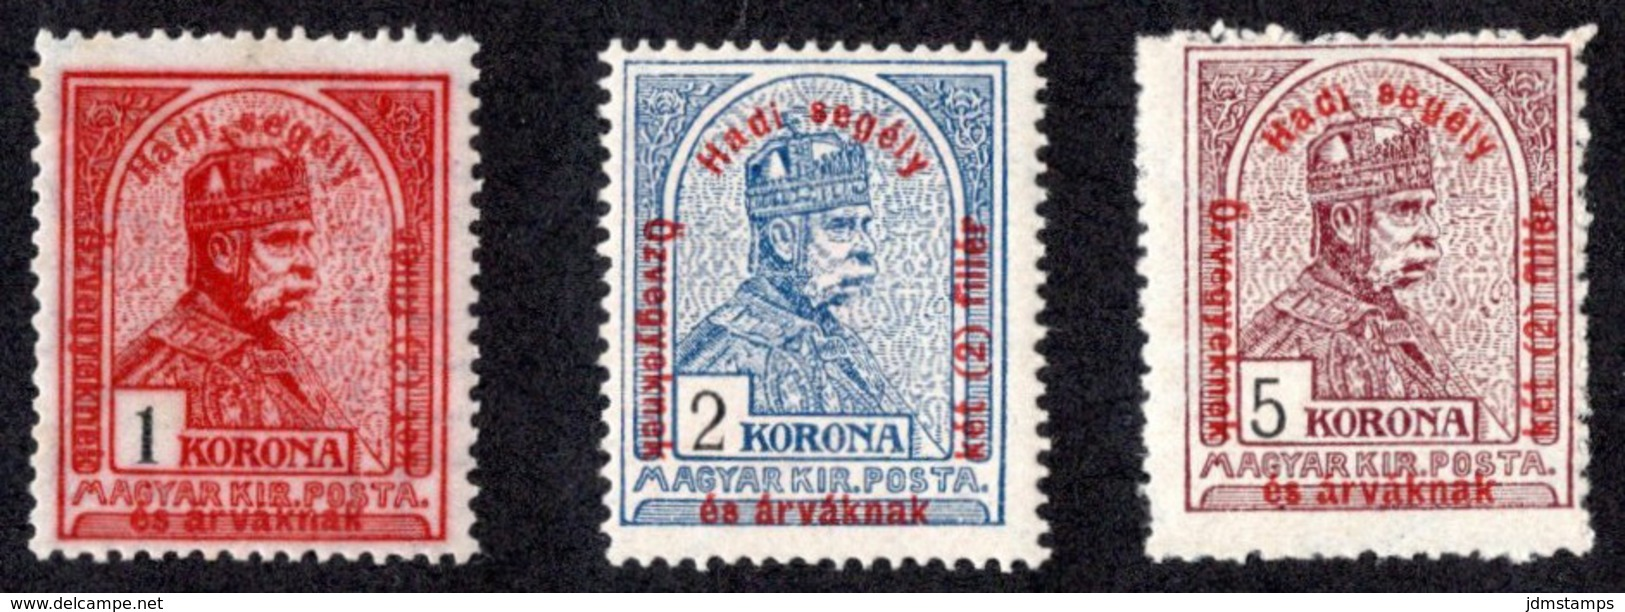 HUN SC #B49-51 MNH 1915 S-P/Franz Josef I W/surchg CV $13.60 (H) - Unused Stamps